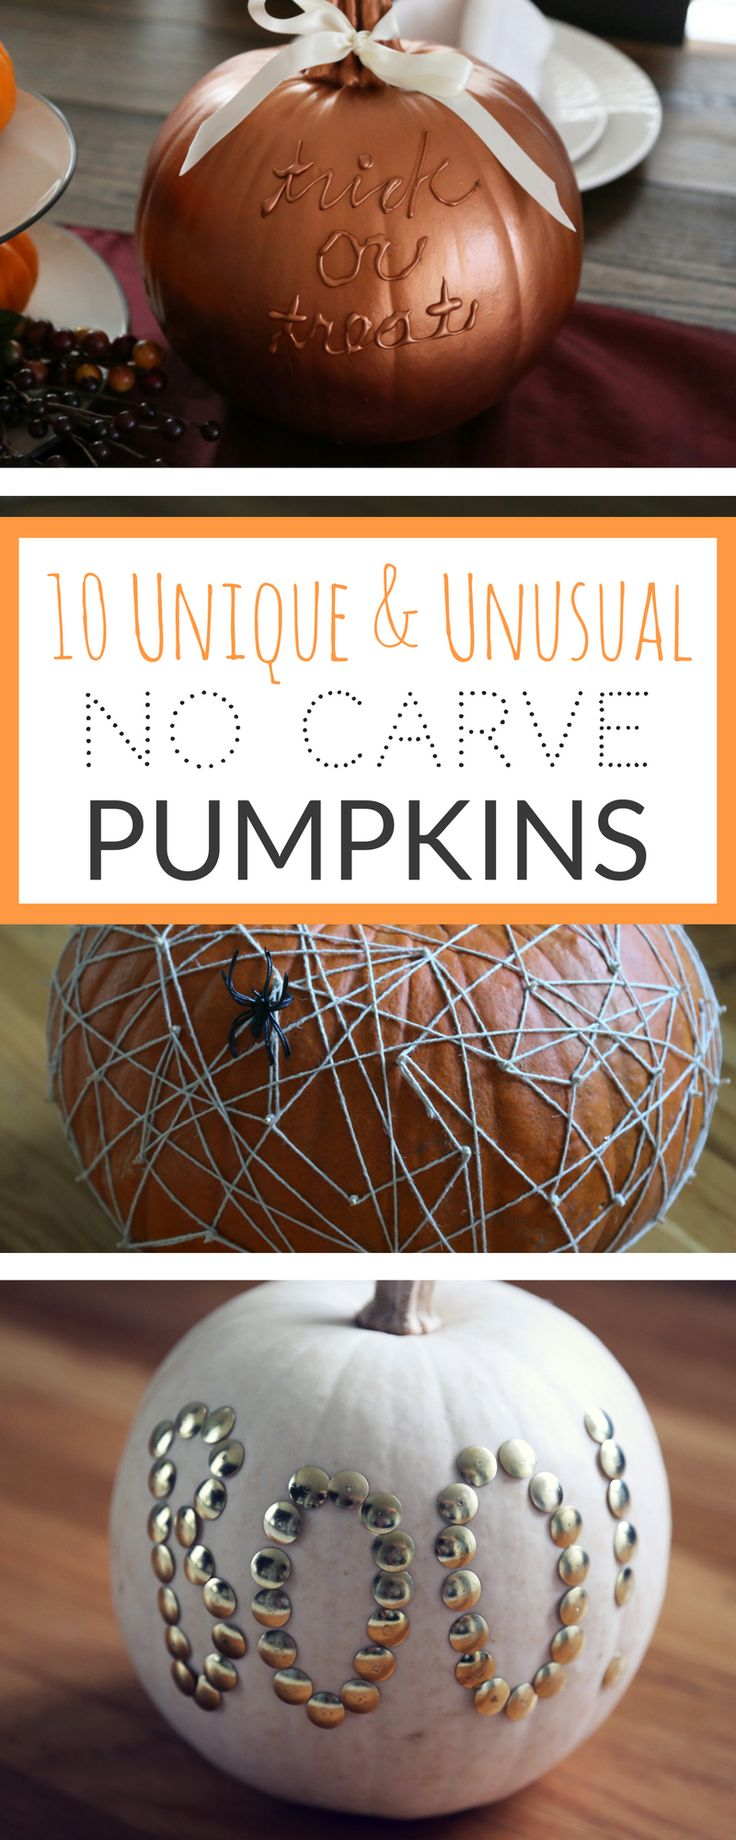 Pumpkin ideas for kids and crafty adults.